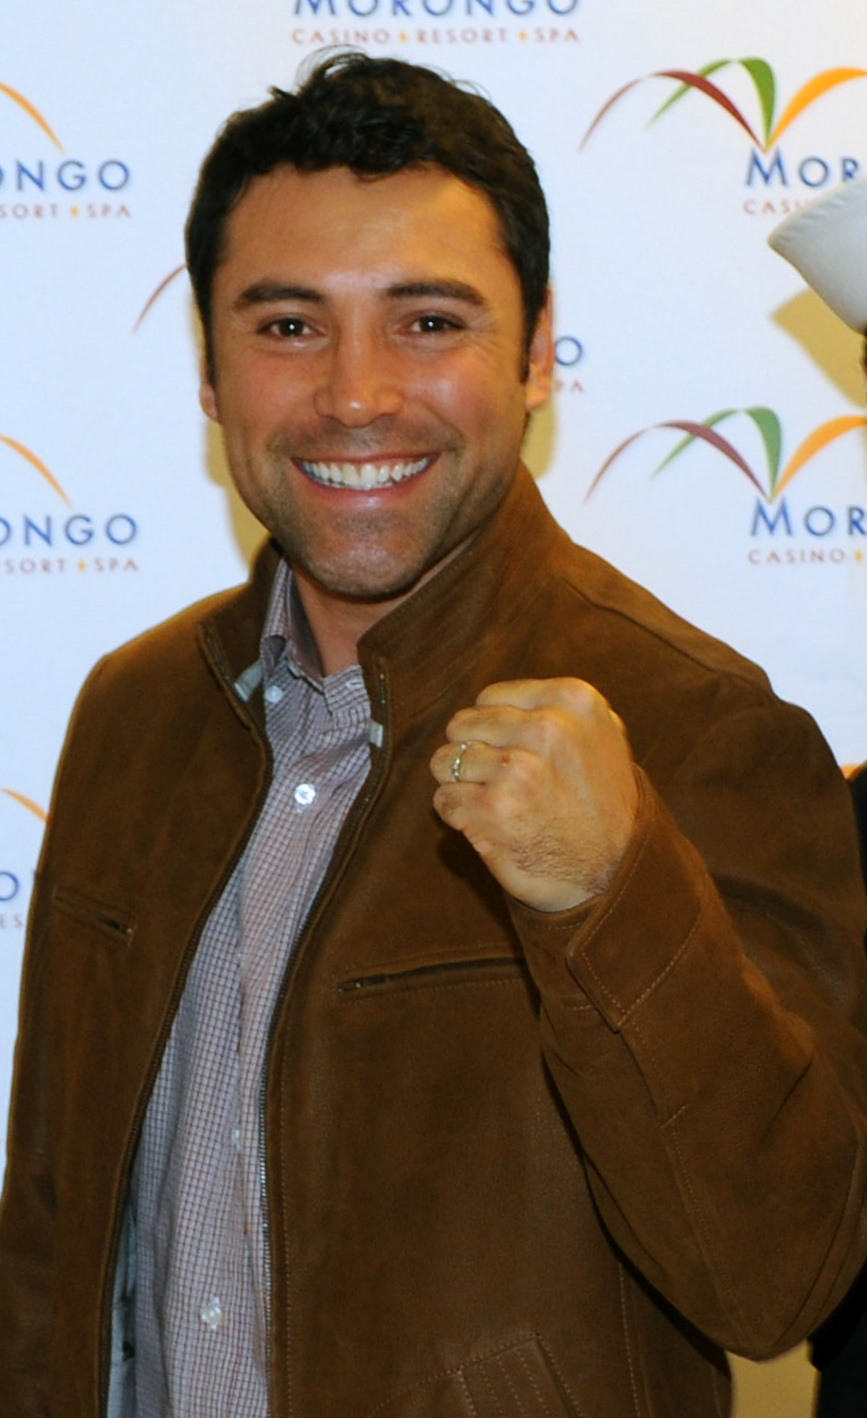 789703 Can Fans Afford Mayweather Vs Pacquiao additionally Floyd Mayweather Tops Forbes Worlds Highest Paid Athletes List likewise Oscar Dela Hoya Son as well Gisele Bundchen Photo Album further Top 10 Richest Boxers 2017. on oscar de la hoya salary